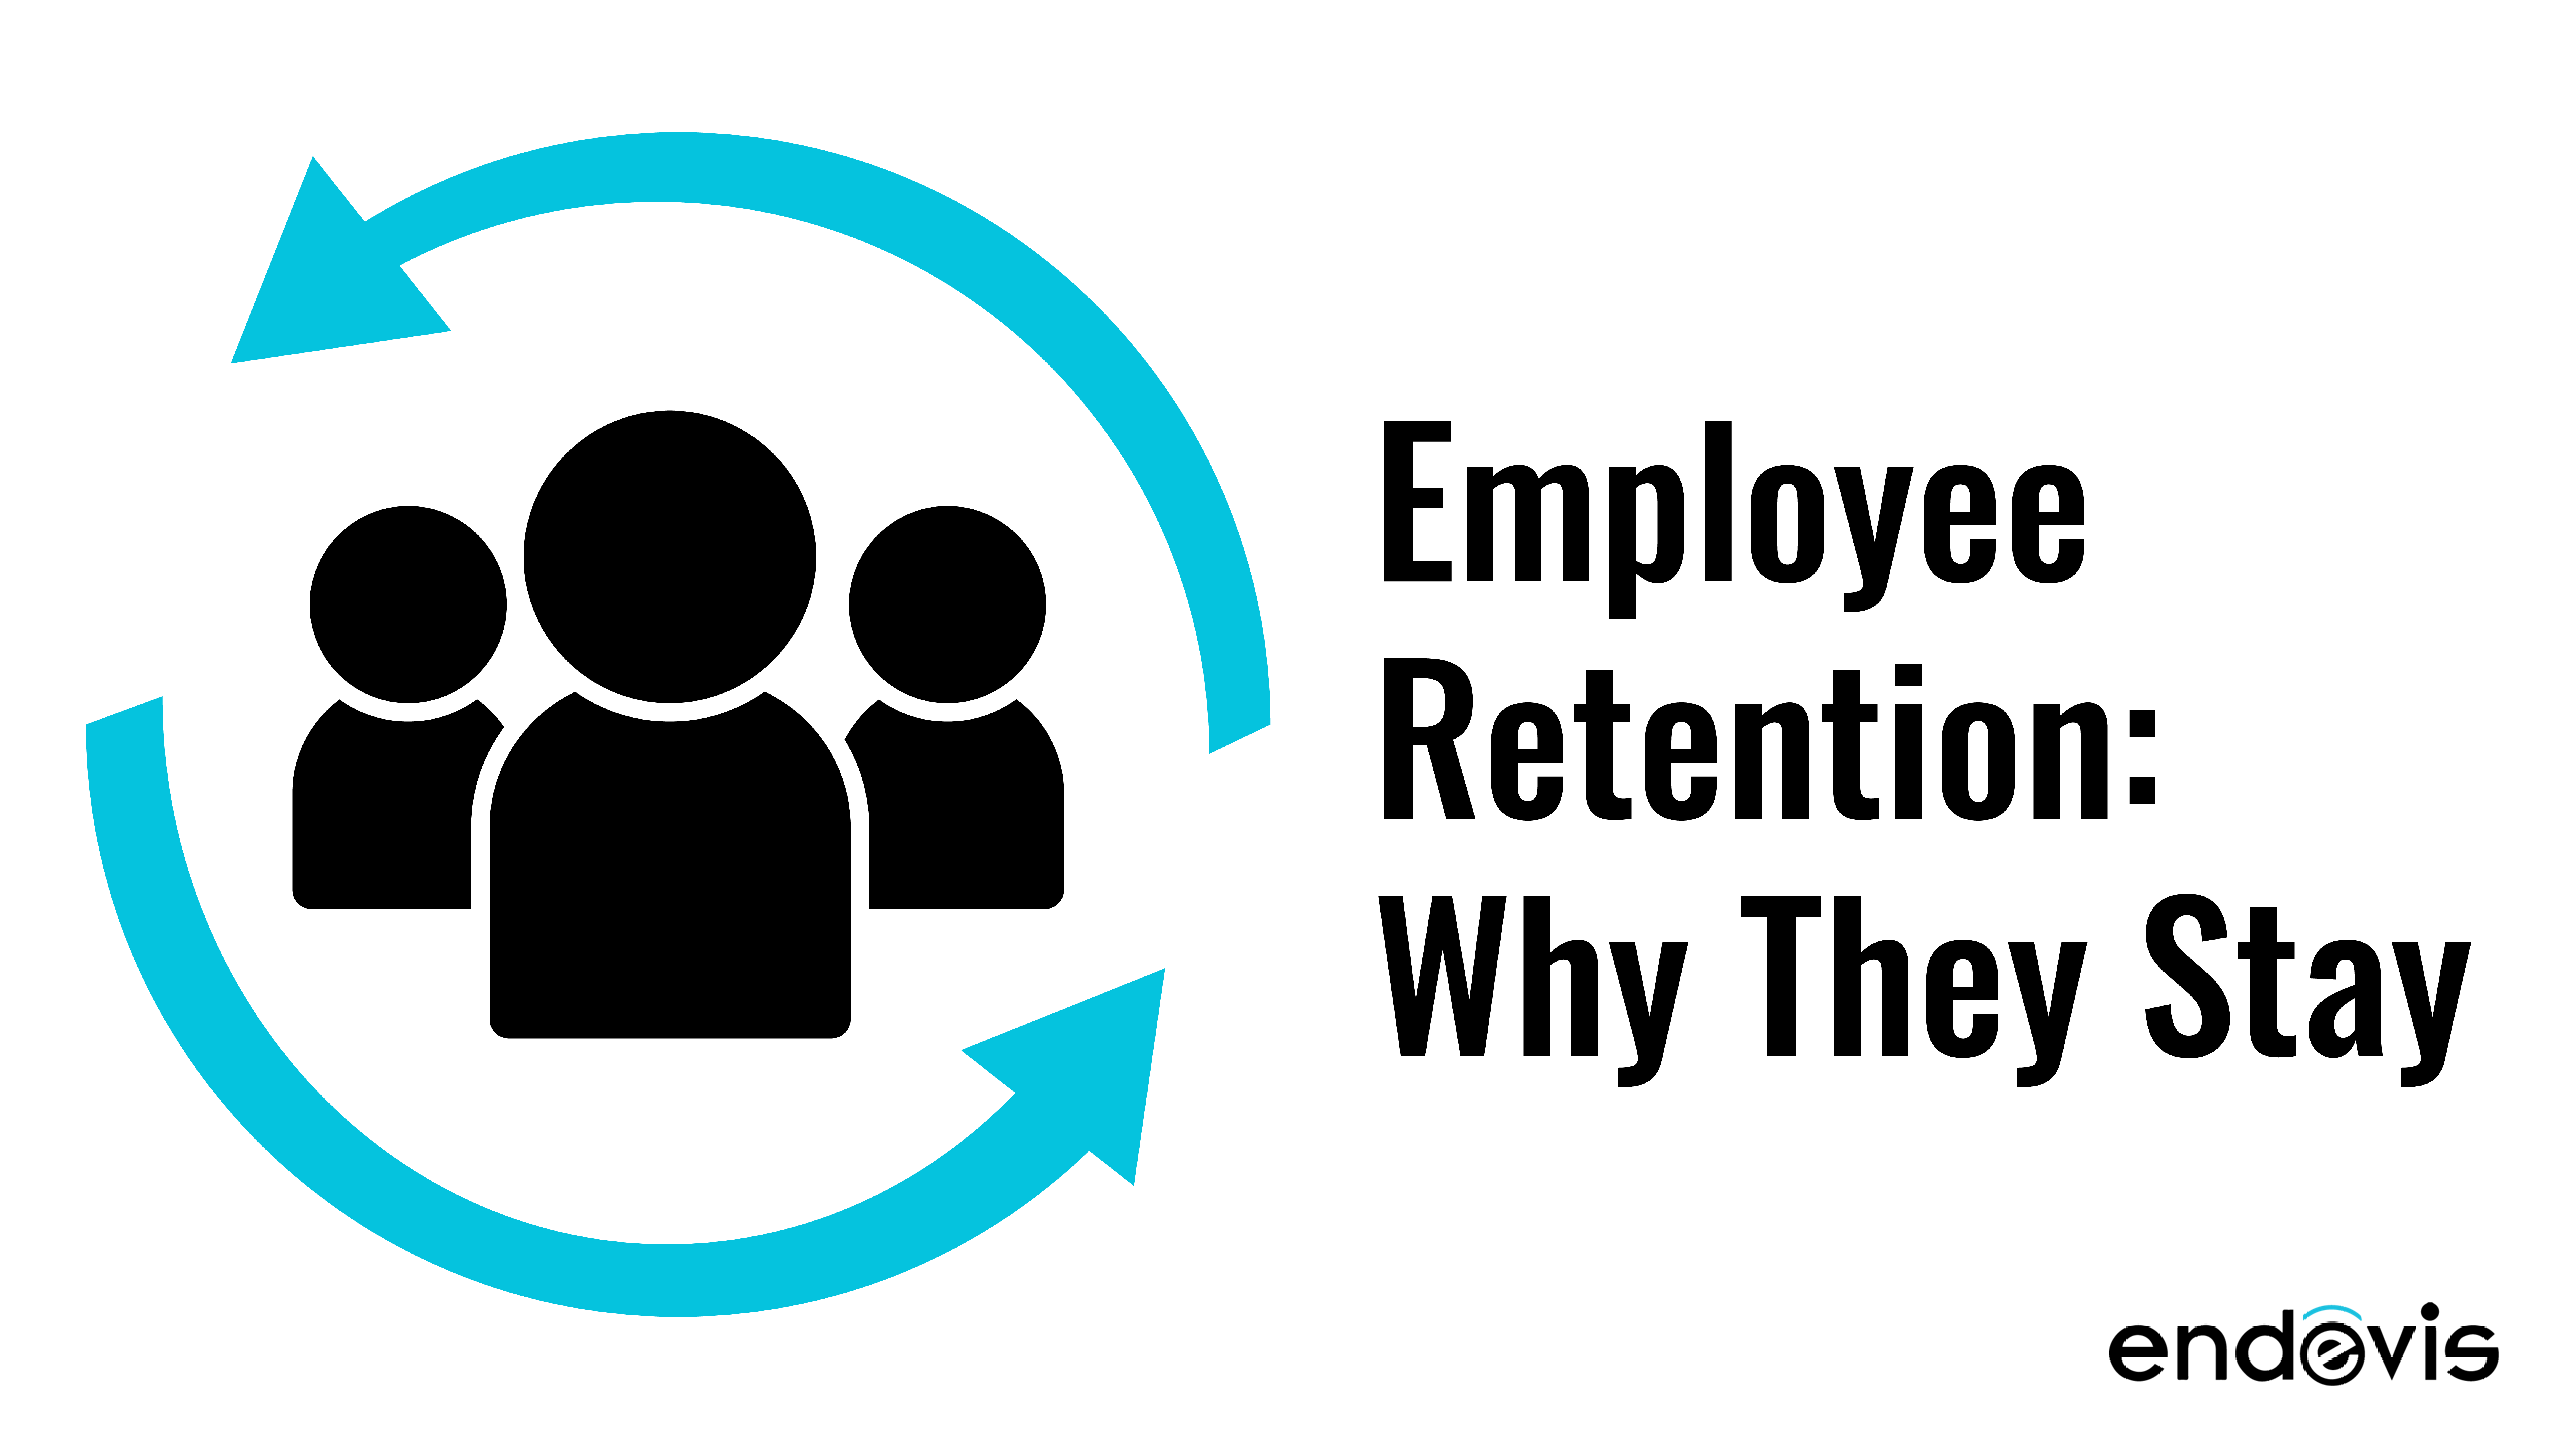 Employee Retention: Why They Stay